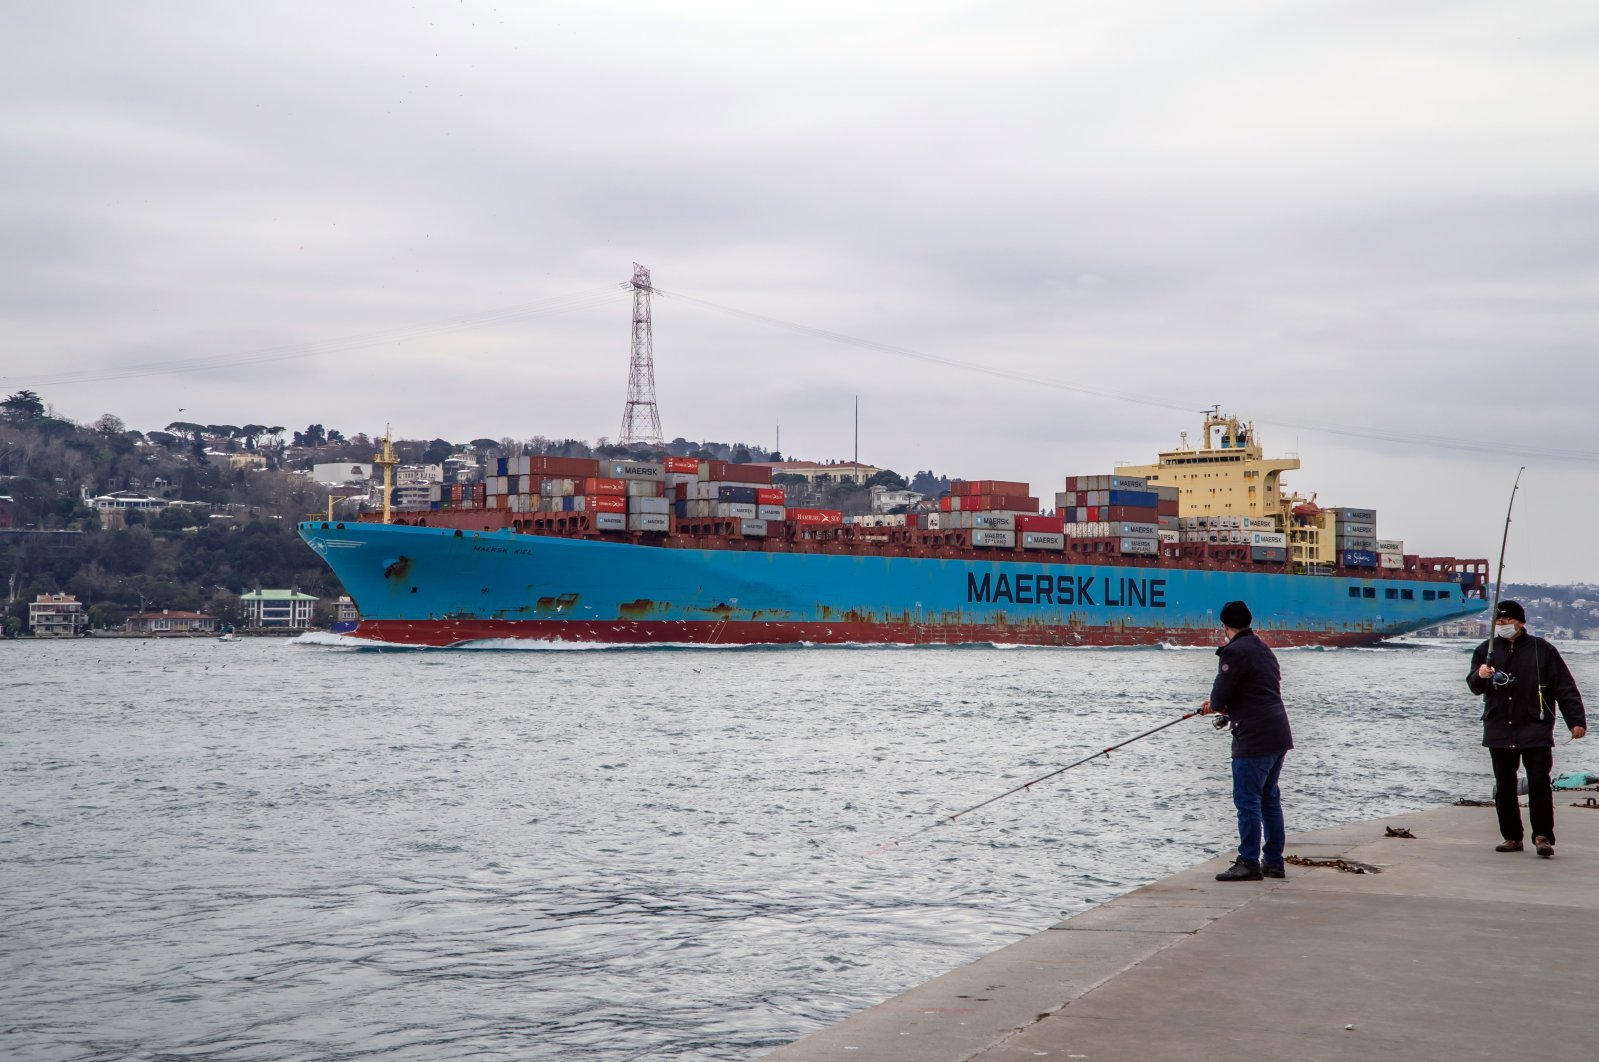 A container freighter ship sails through the Bosporus in Istanbul, Turkey, Feb. 19, 2021. (Shutterstock Photo)